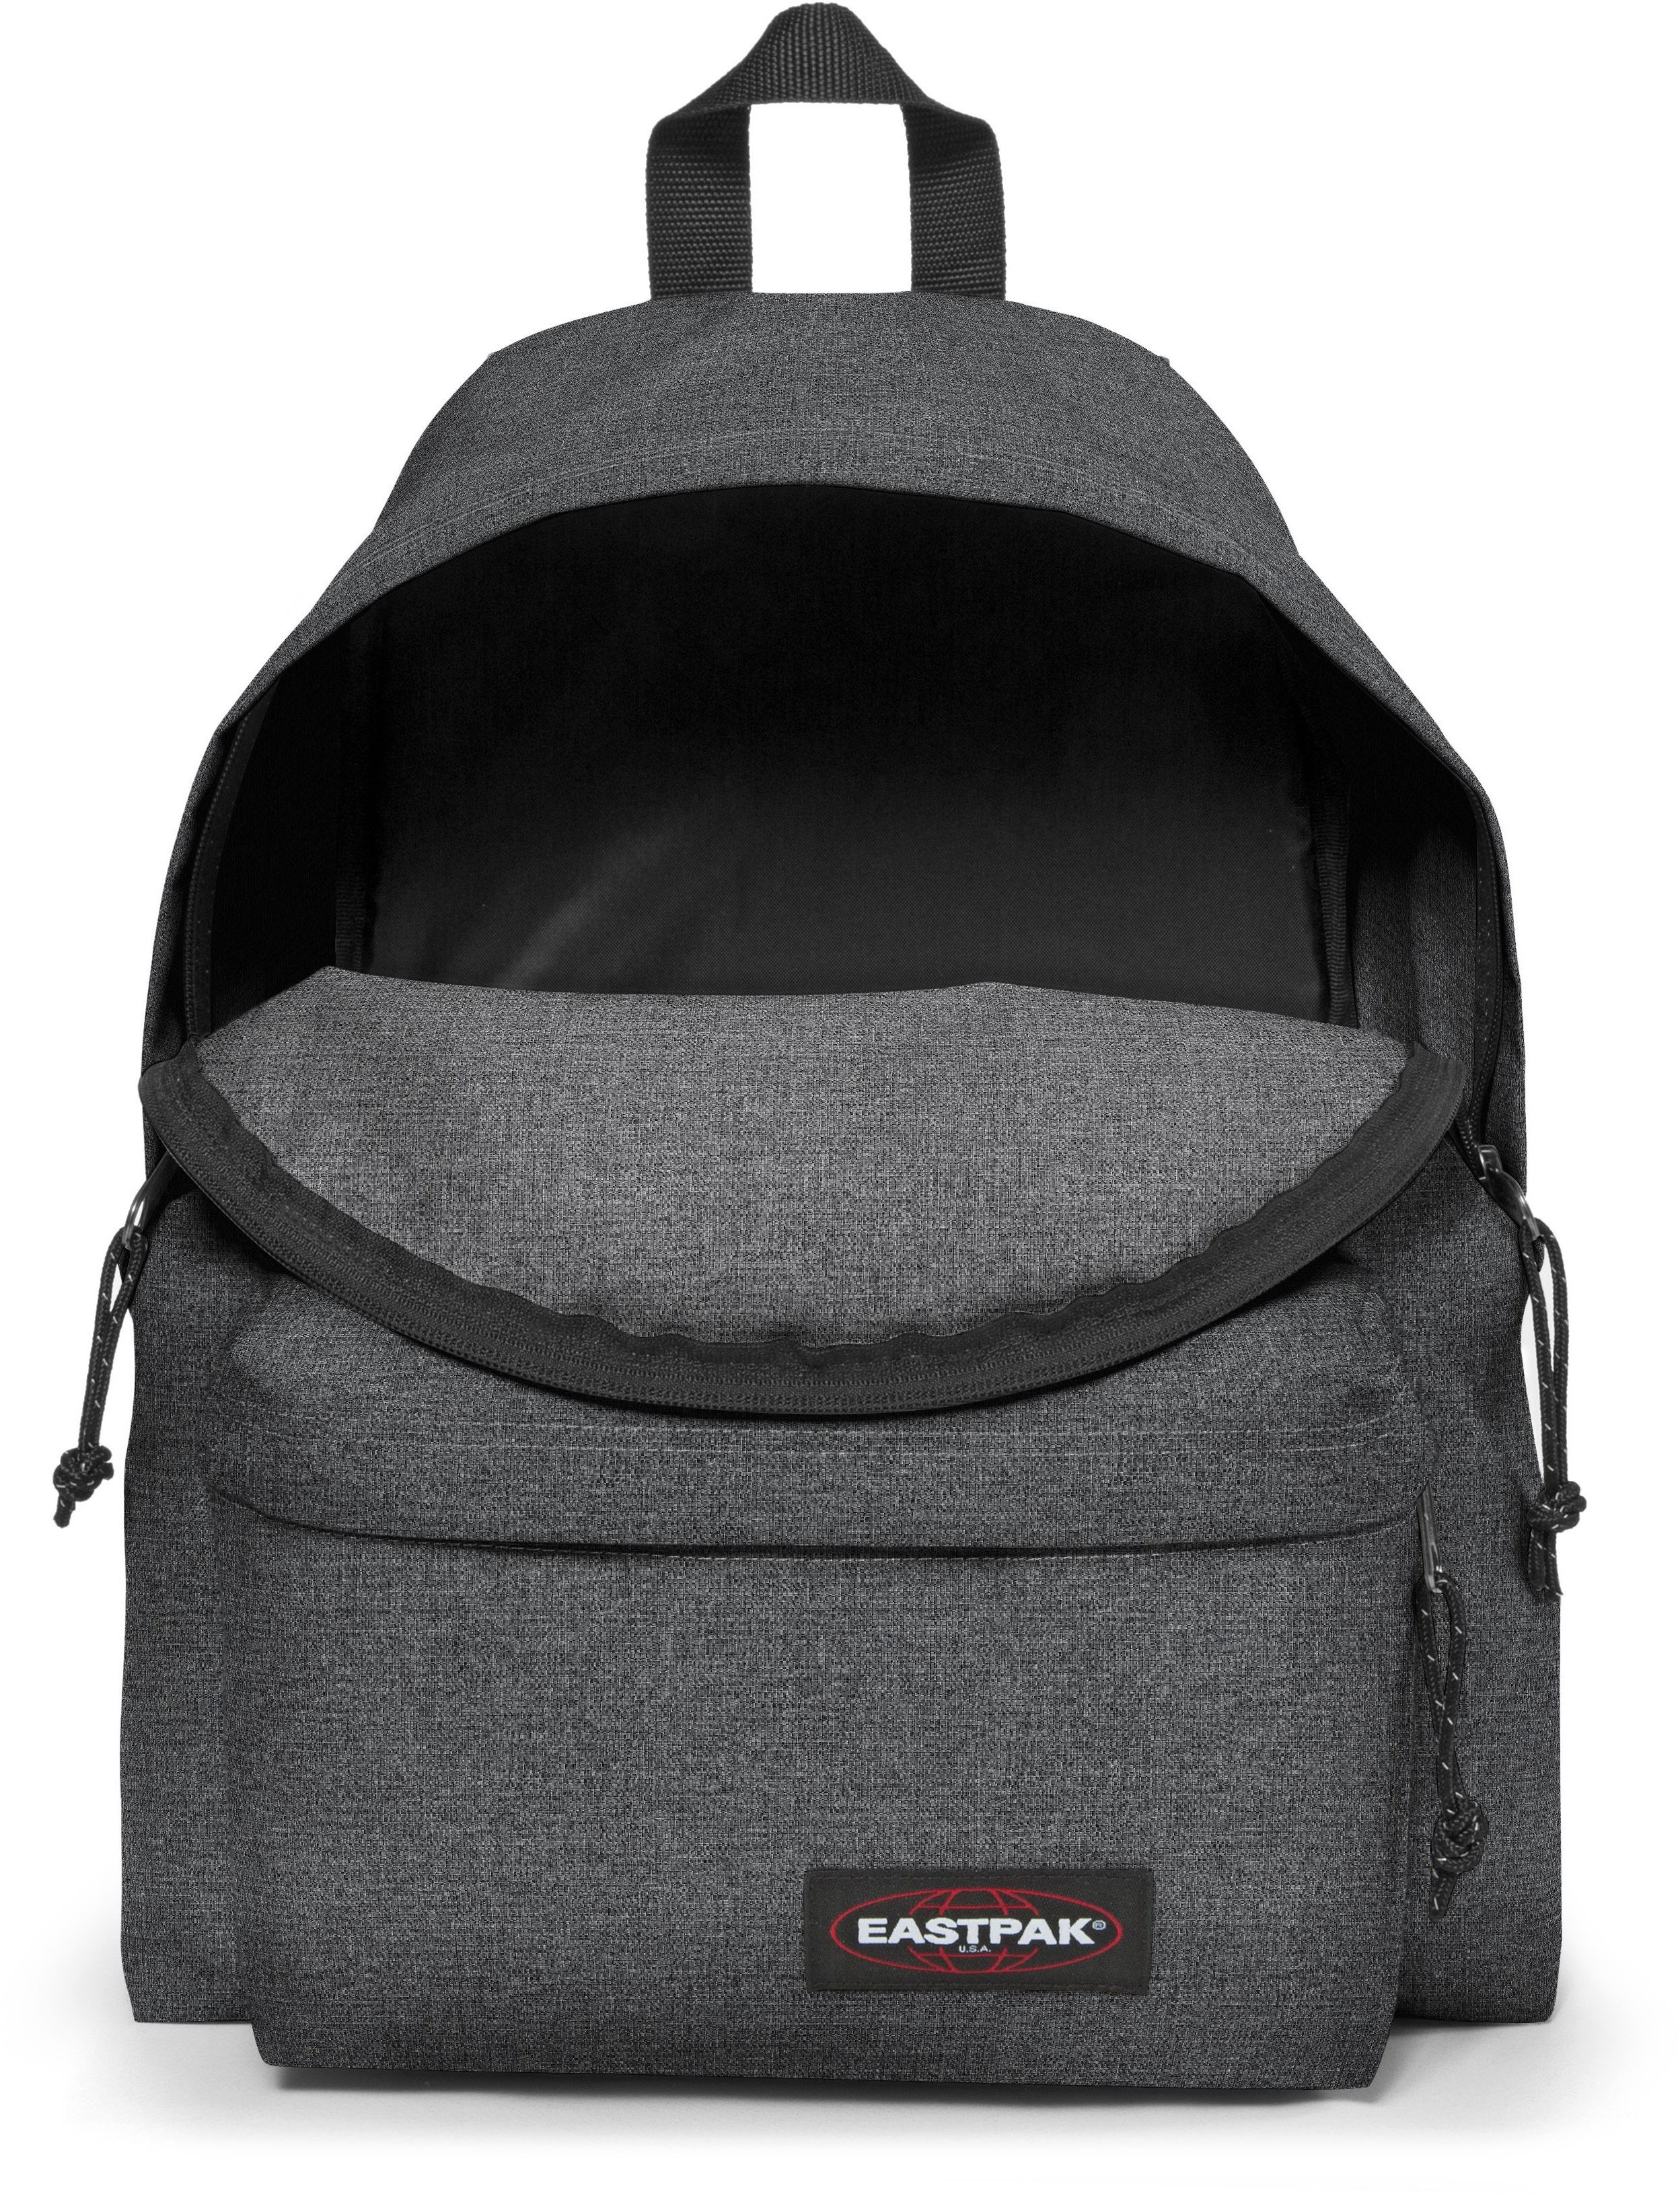 a6feb0bb403 Eastpak rugzak, »PADDED PAK'R black denim« nu online bestellen | OTTO